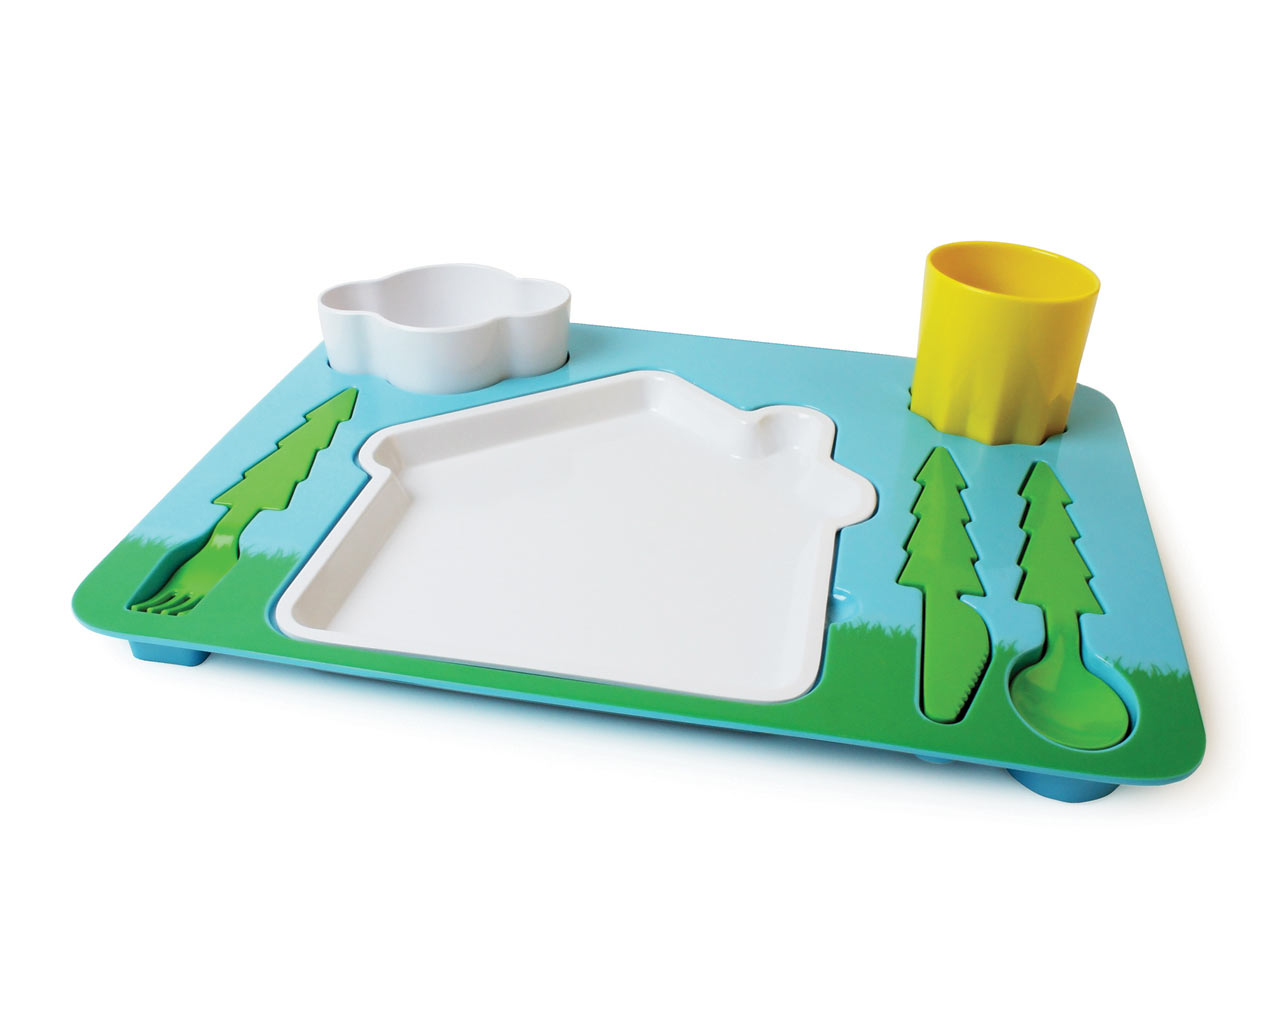 Children's Landscape Dinner Set by DOIY